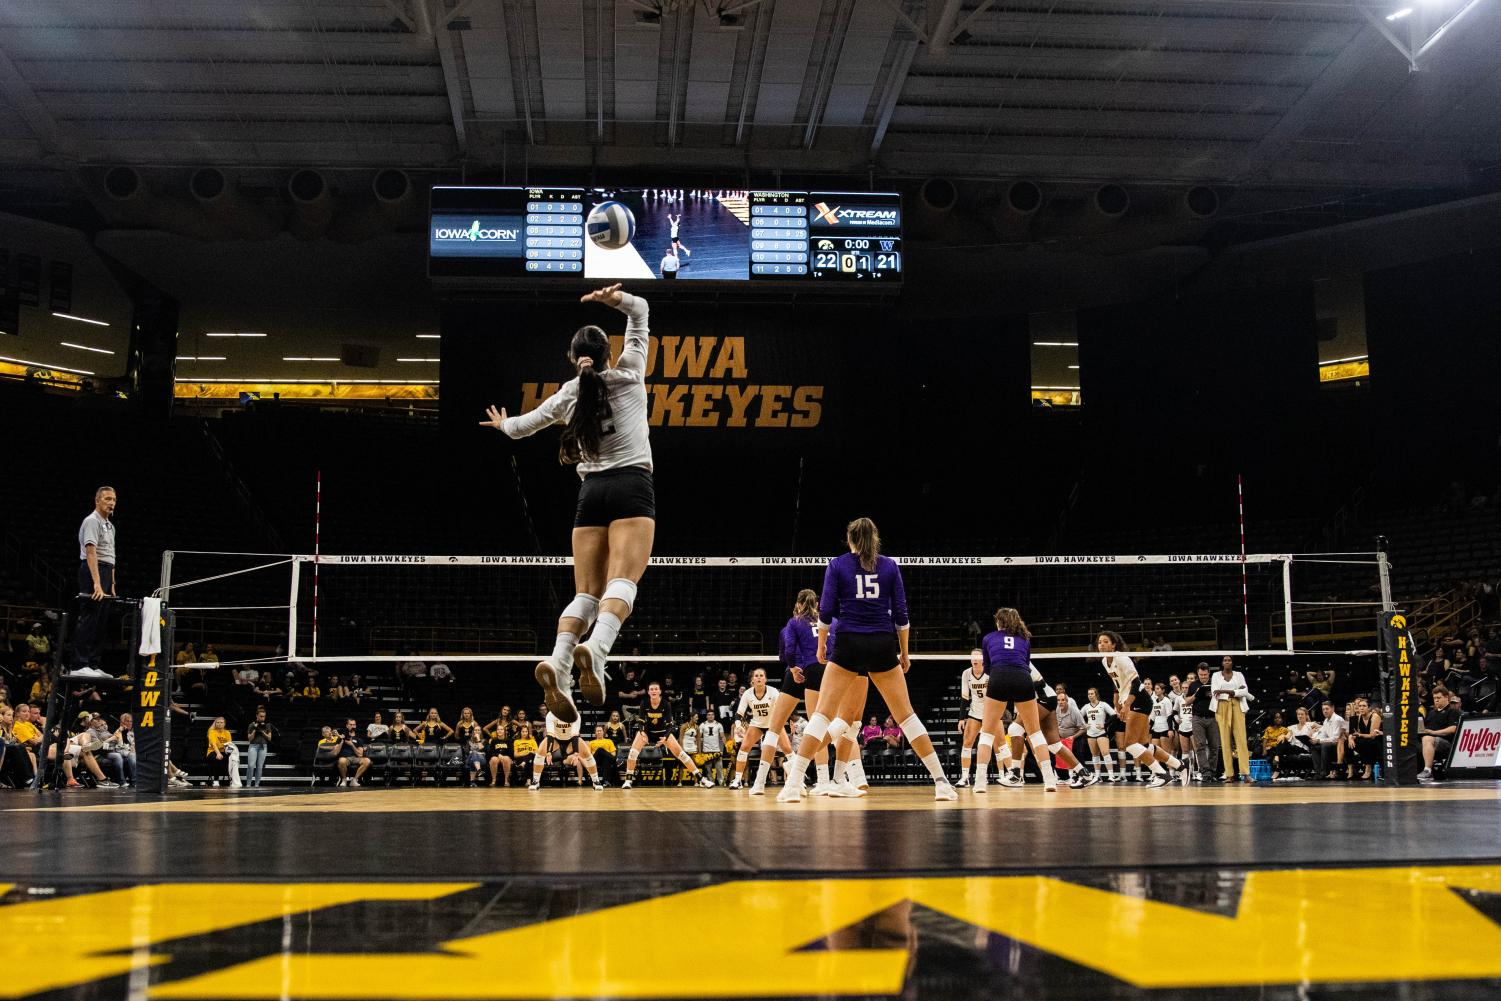 Washington+libero+Shayne+McPherson+serves+the+ball+during+a+volleyball+match+between+Iowa+and+Washington+at+Carver+Hawkeye+Arena+on+Saturday%2C+September+7%2C+2019.+The+Hawkeyes+were+defeated+by+the+Huskies%2C+3-1.